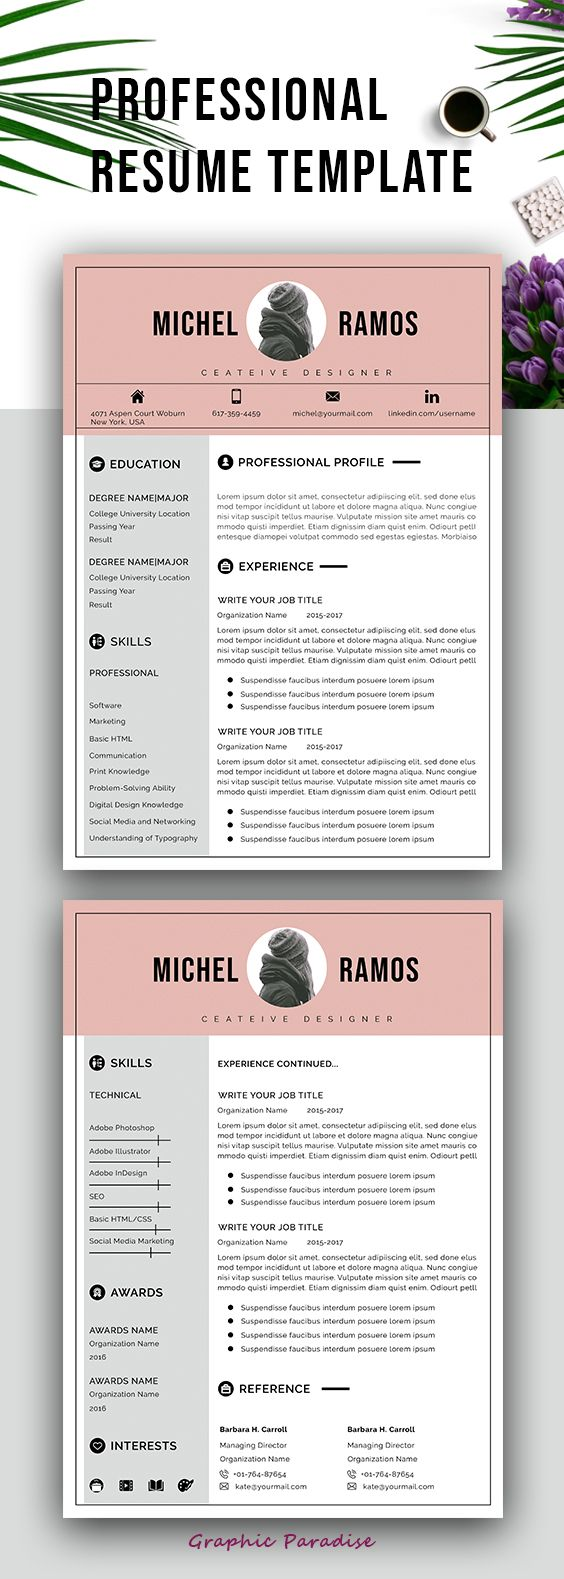 Professional resume template instant download| MS word resume template| Resume with photo and cover letter| A4 and US Letter| resume for mac #resume #resumetemplate #cv #cvtemplate